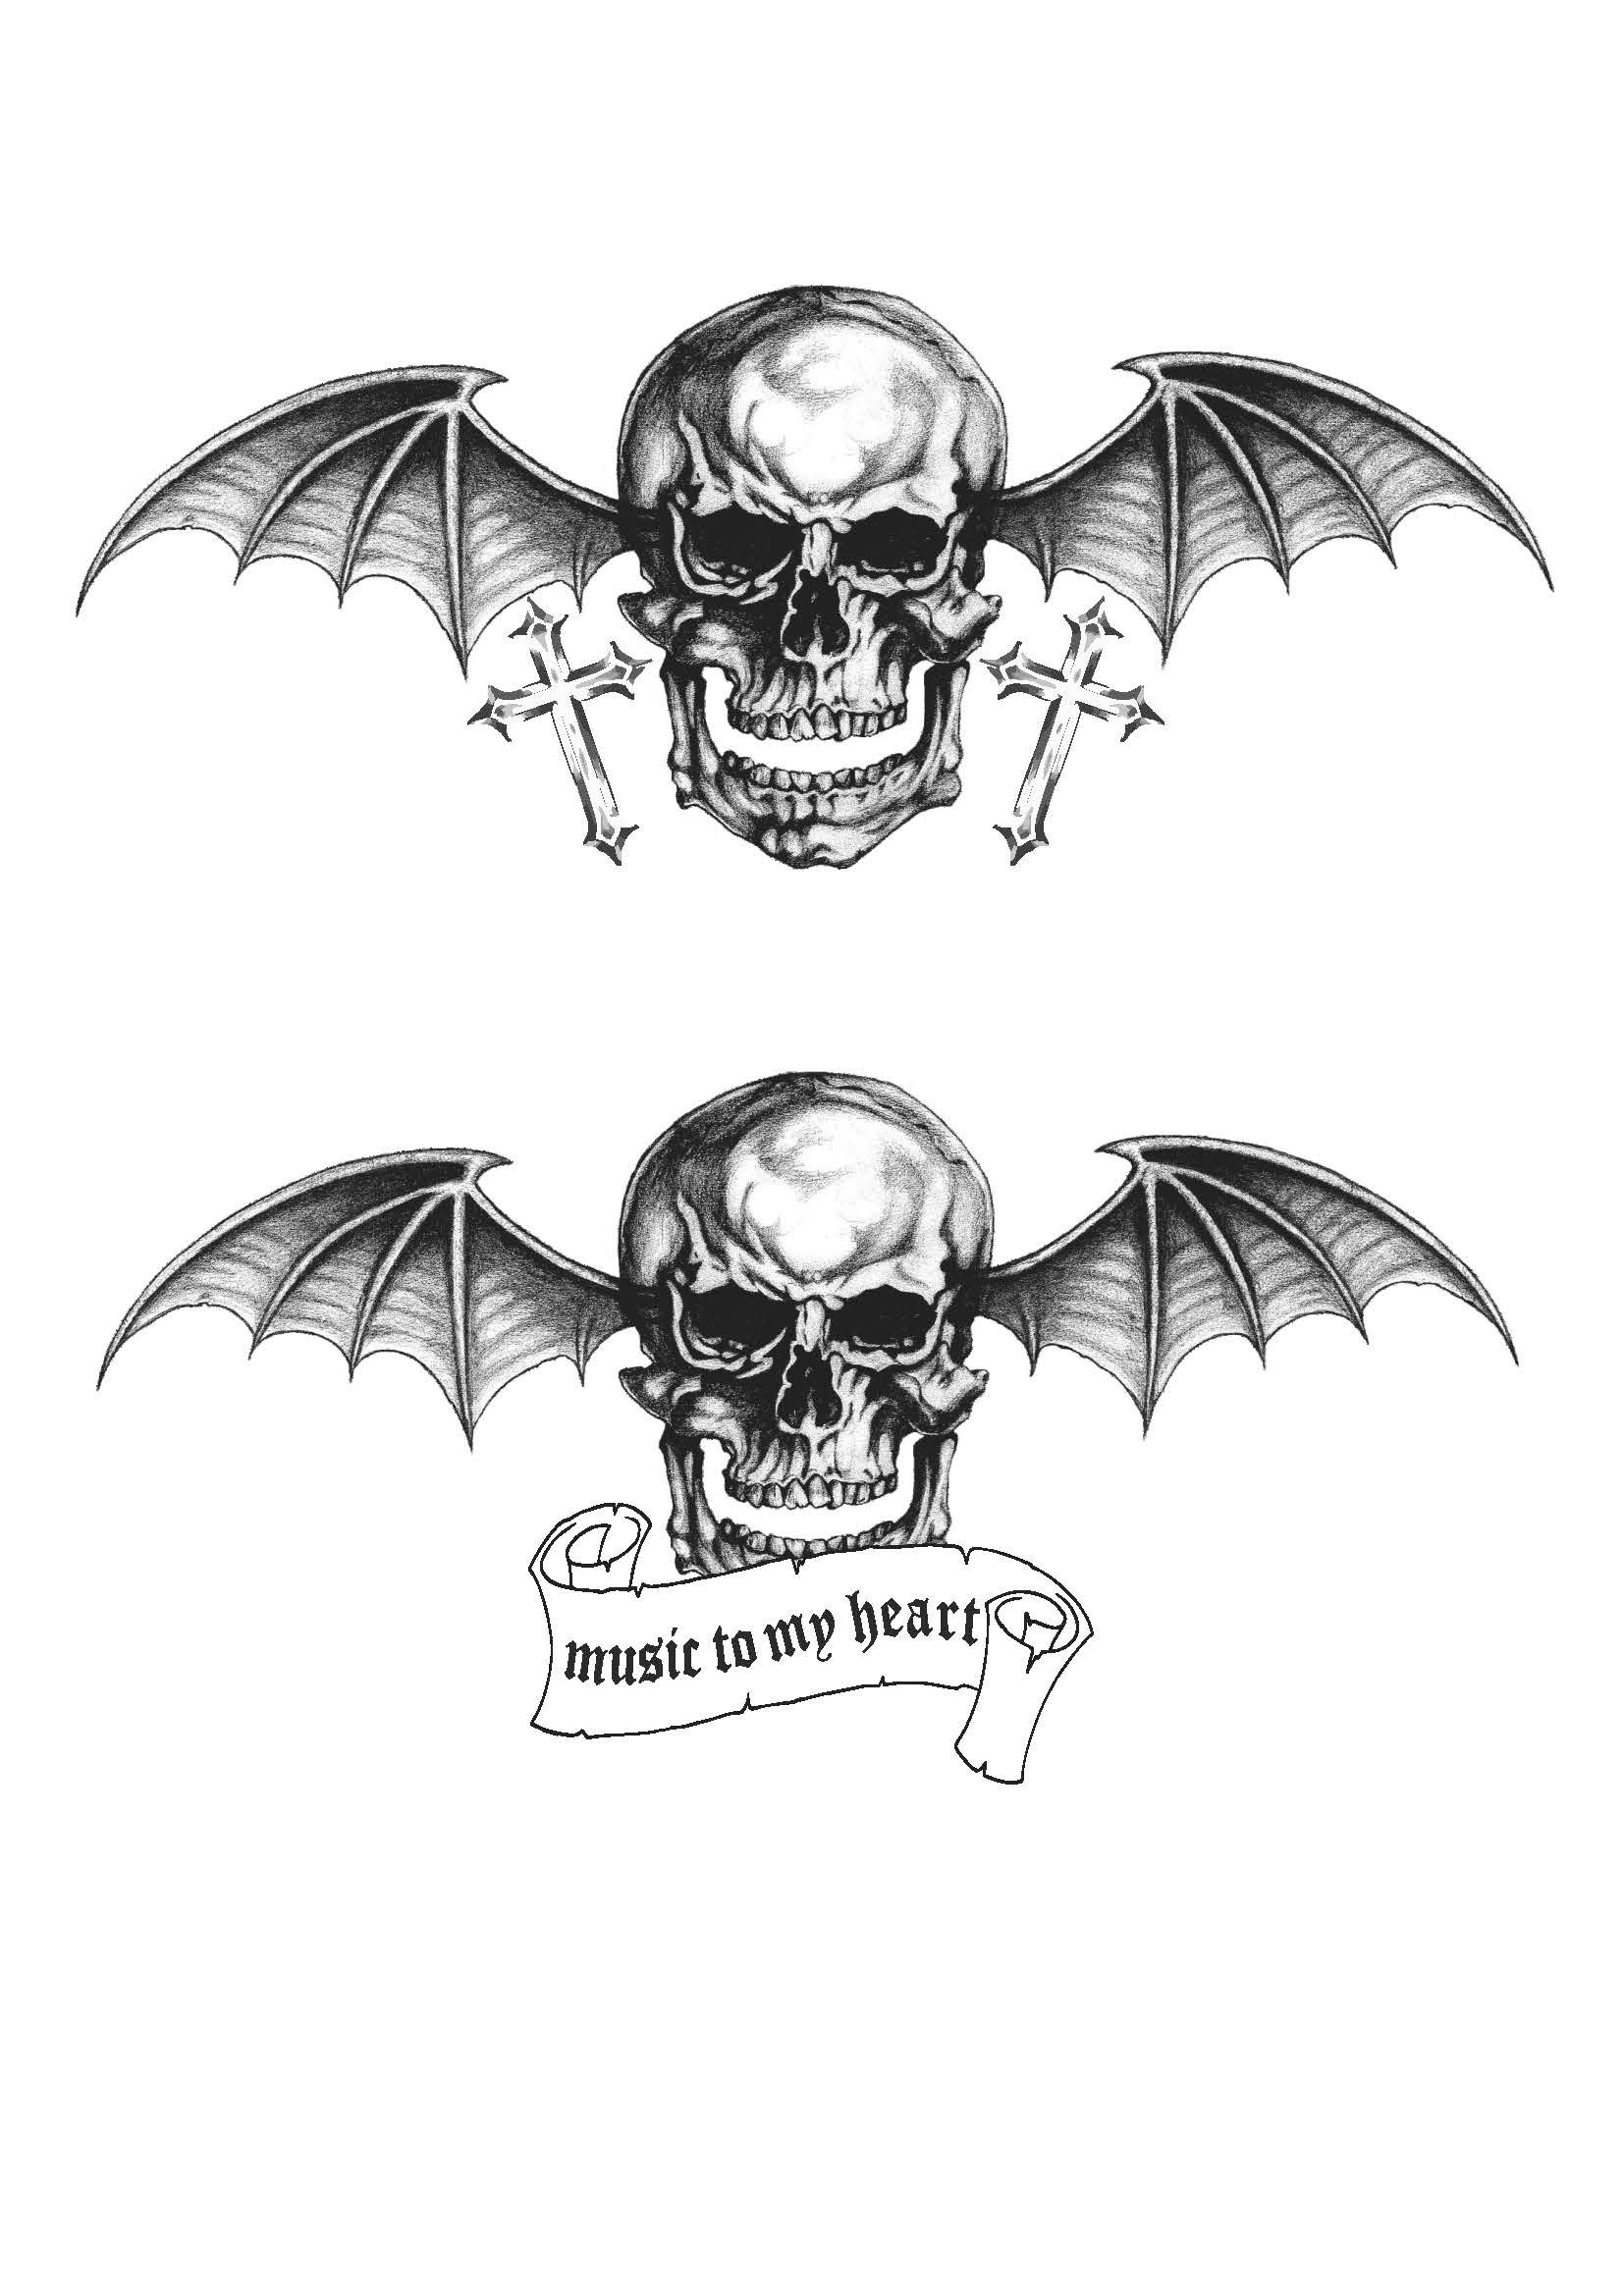 Avenged Sevenfold Deathbat Wallpaper 75 Images Ideas And Designs